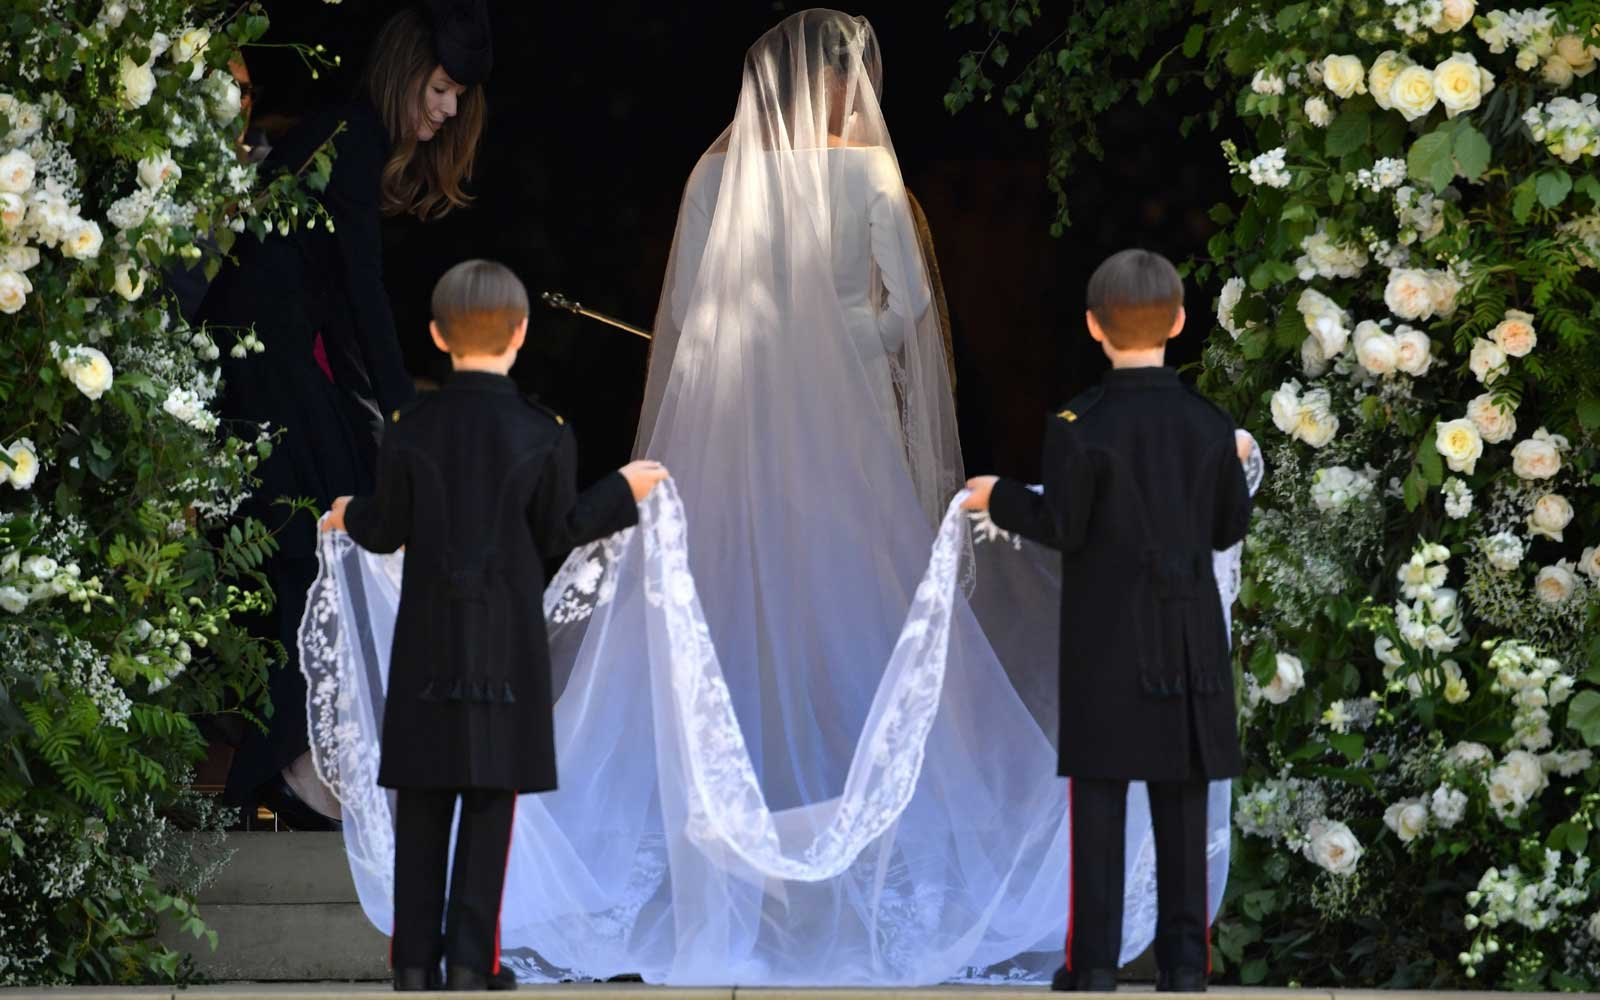 US actress Meghan Markle arrives for the wedding ceremony to marry Britain's Prince Harry, Duke of Sussex, at St George's Chapel, Windsor Castle, in Windsor, on May 19, 2018.